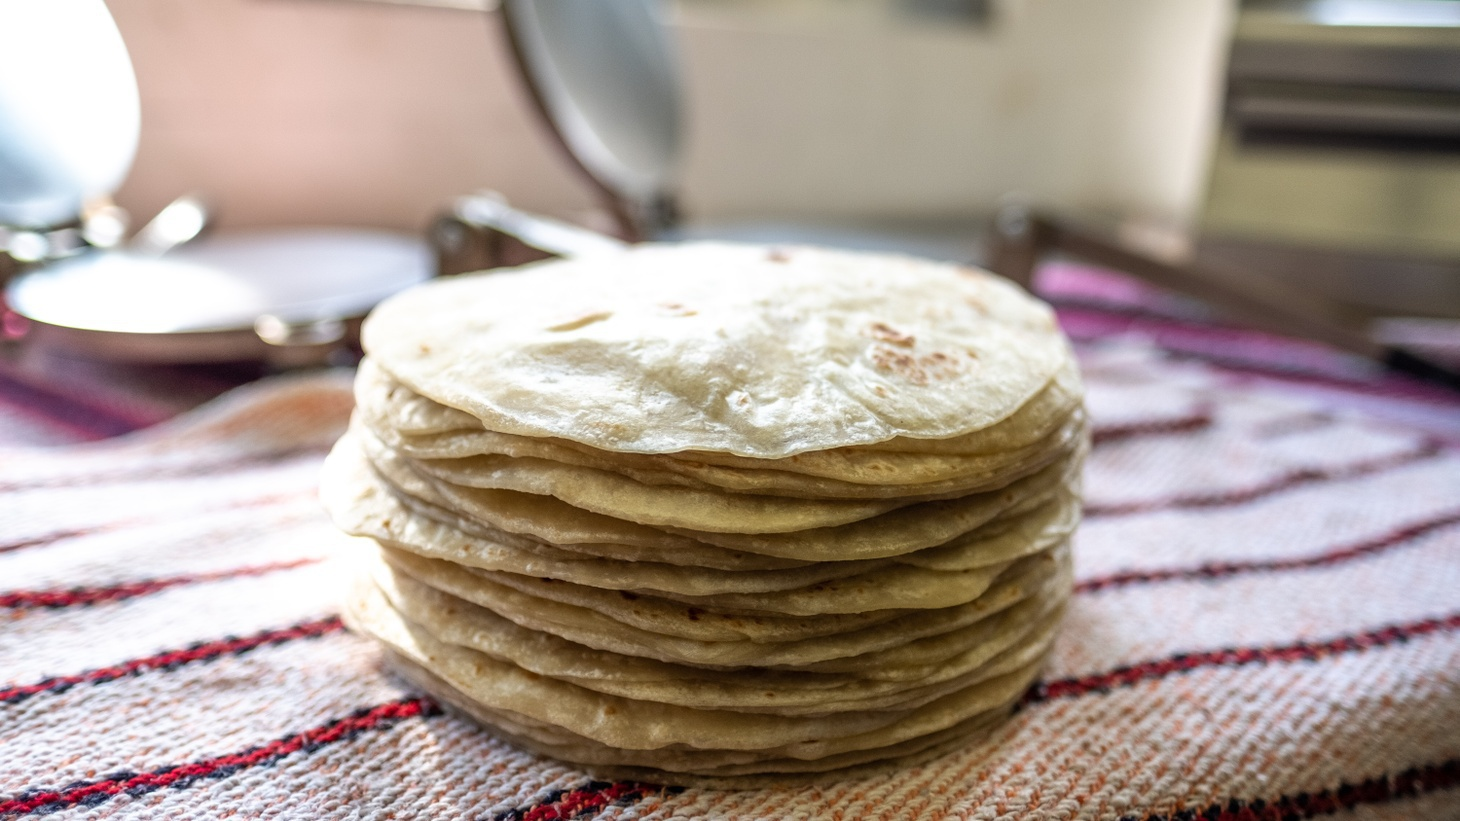 A stack of finished tortillas at Sonoratown.